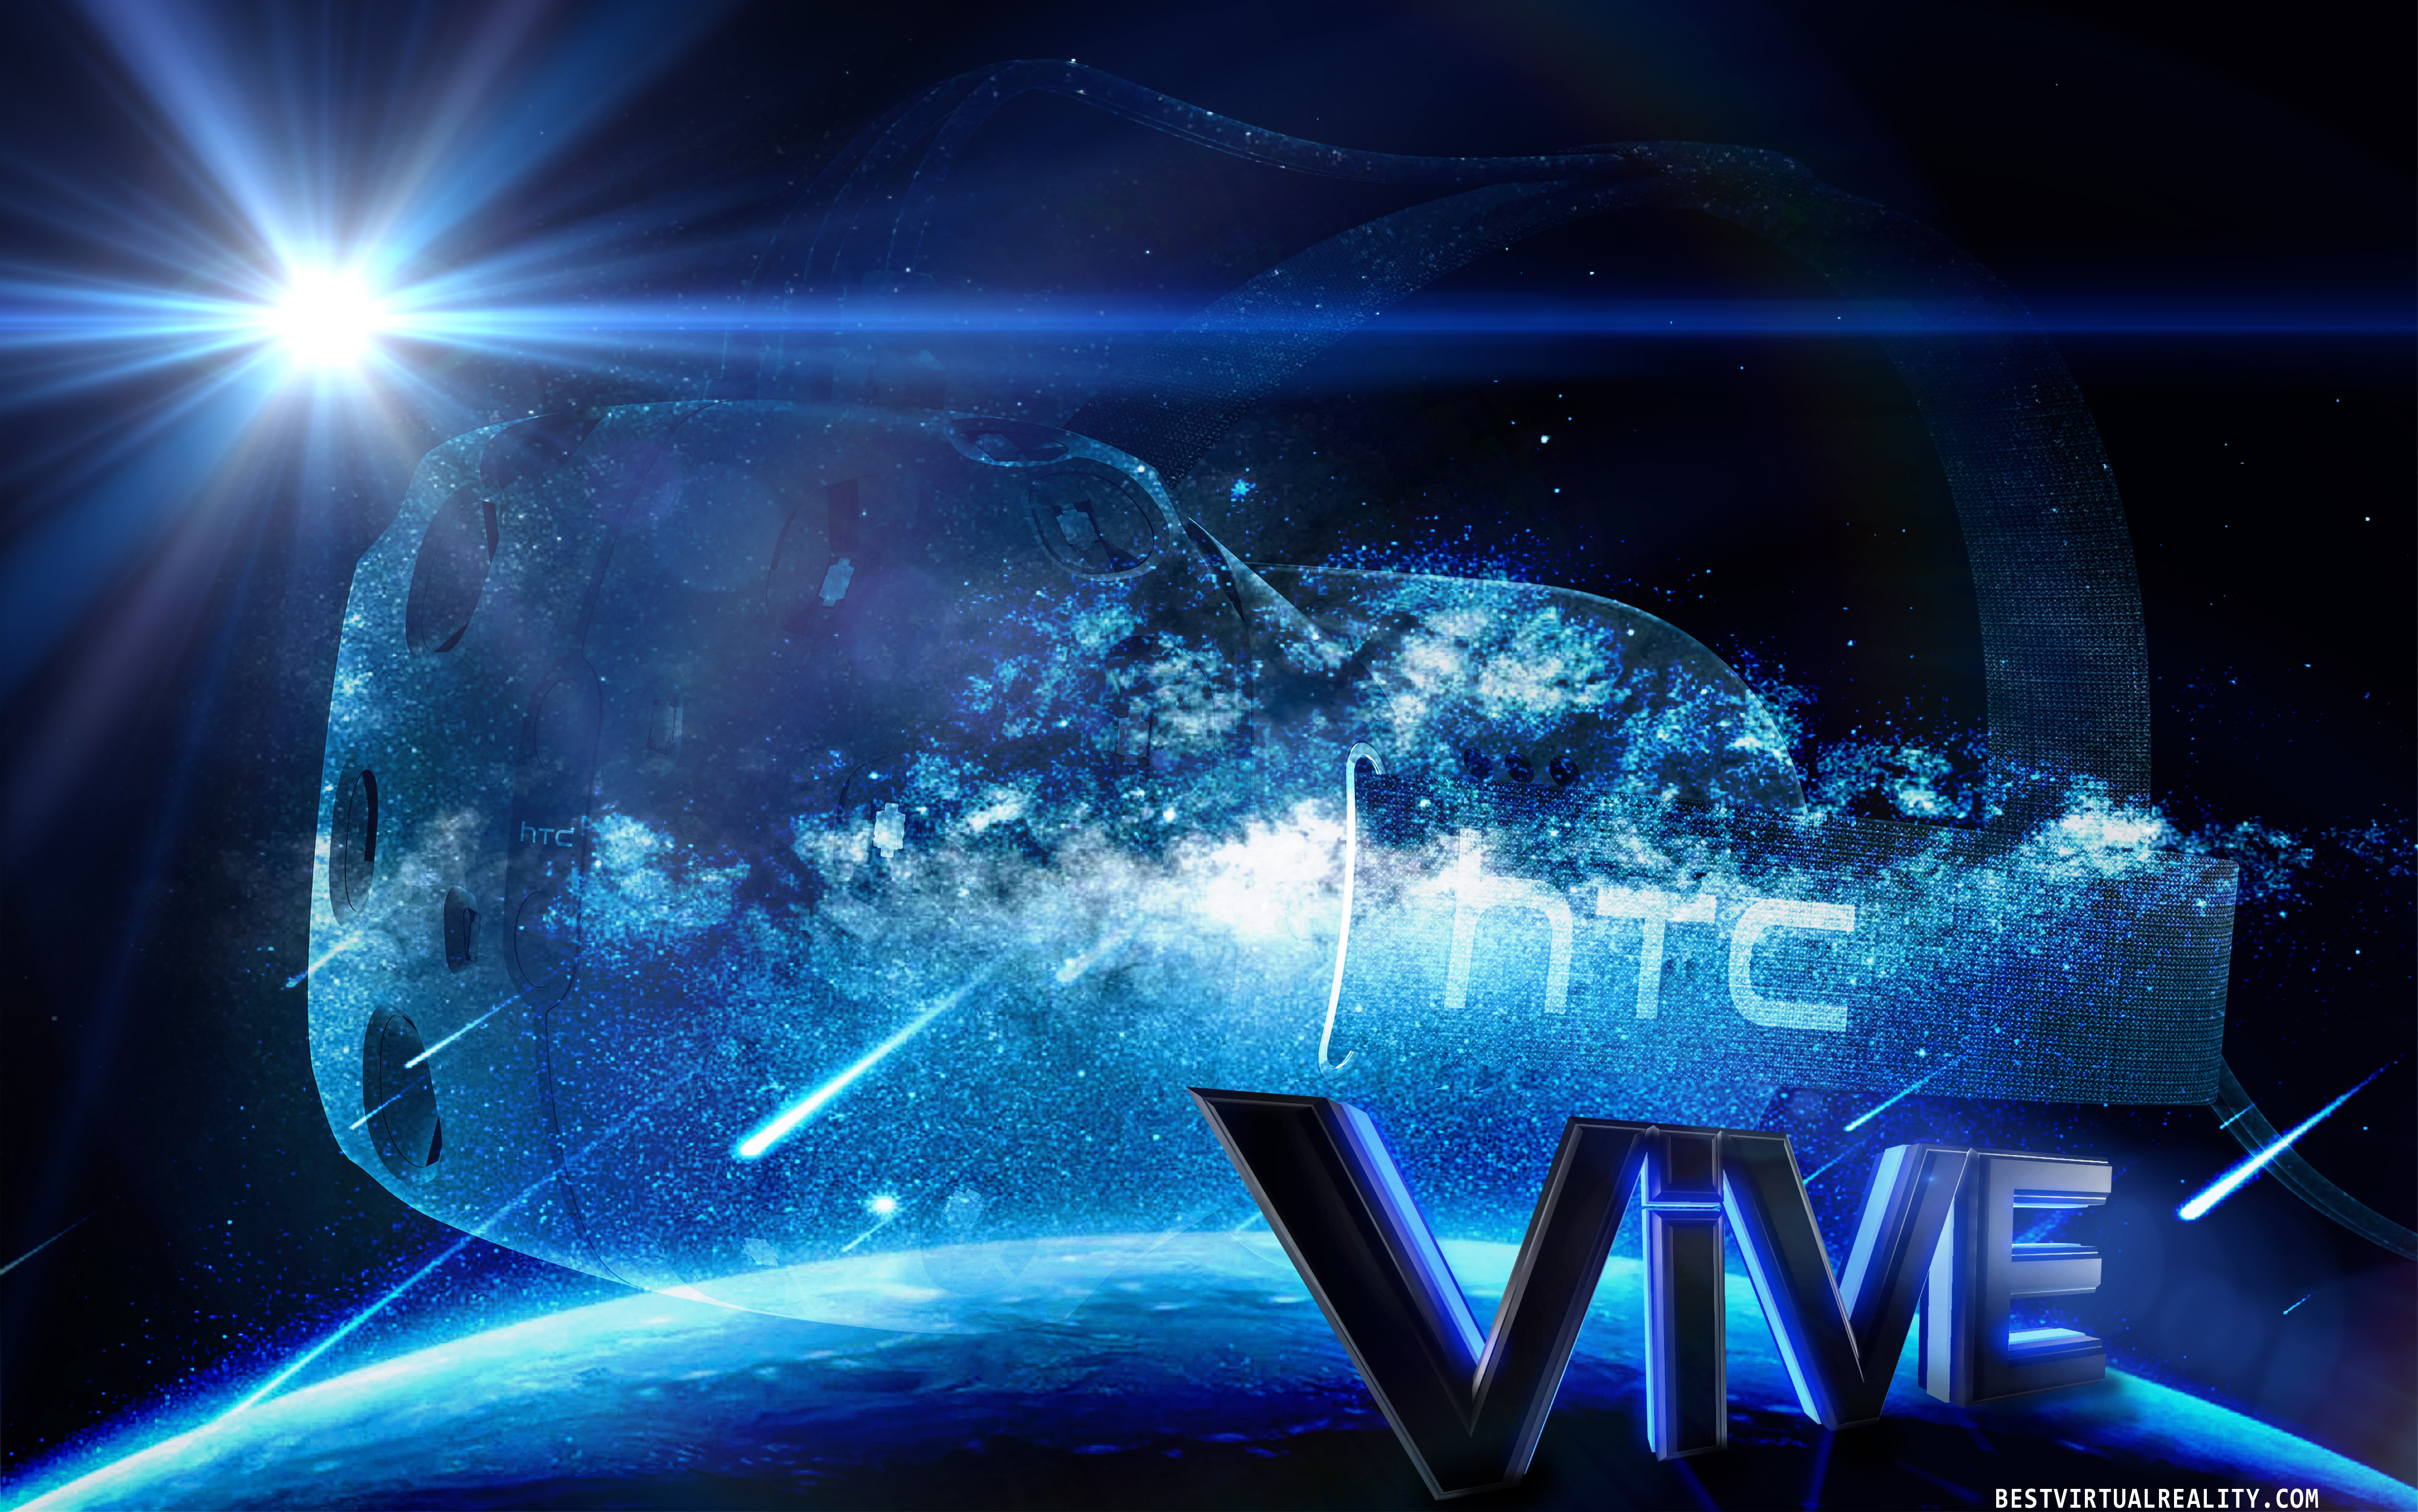 Htc Vive Wallpapers Pictures Images HD Wallpapers Download Free Images Wallpaper [1000image.com]